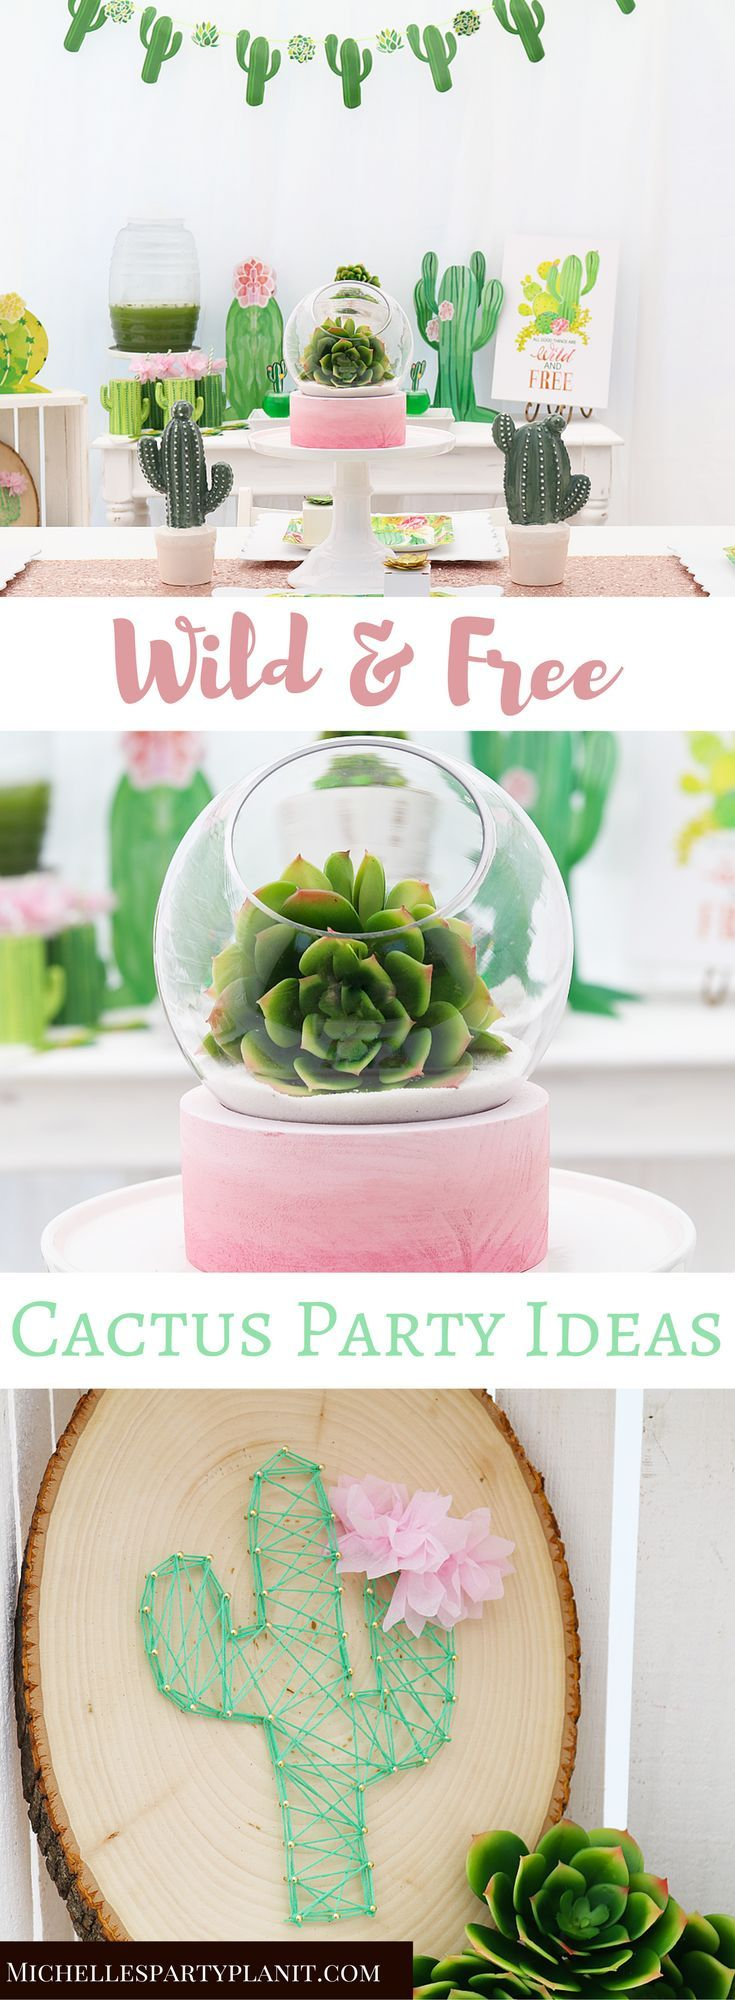 Succulent Themed Party Ideas & Decorations is part of Cactus decor Party - Celebrate all that is Wild and Free with this Cactus Party by Michelle's Party PlanIt  Filled with simple yet impactful ideas for any celebration